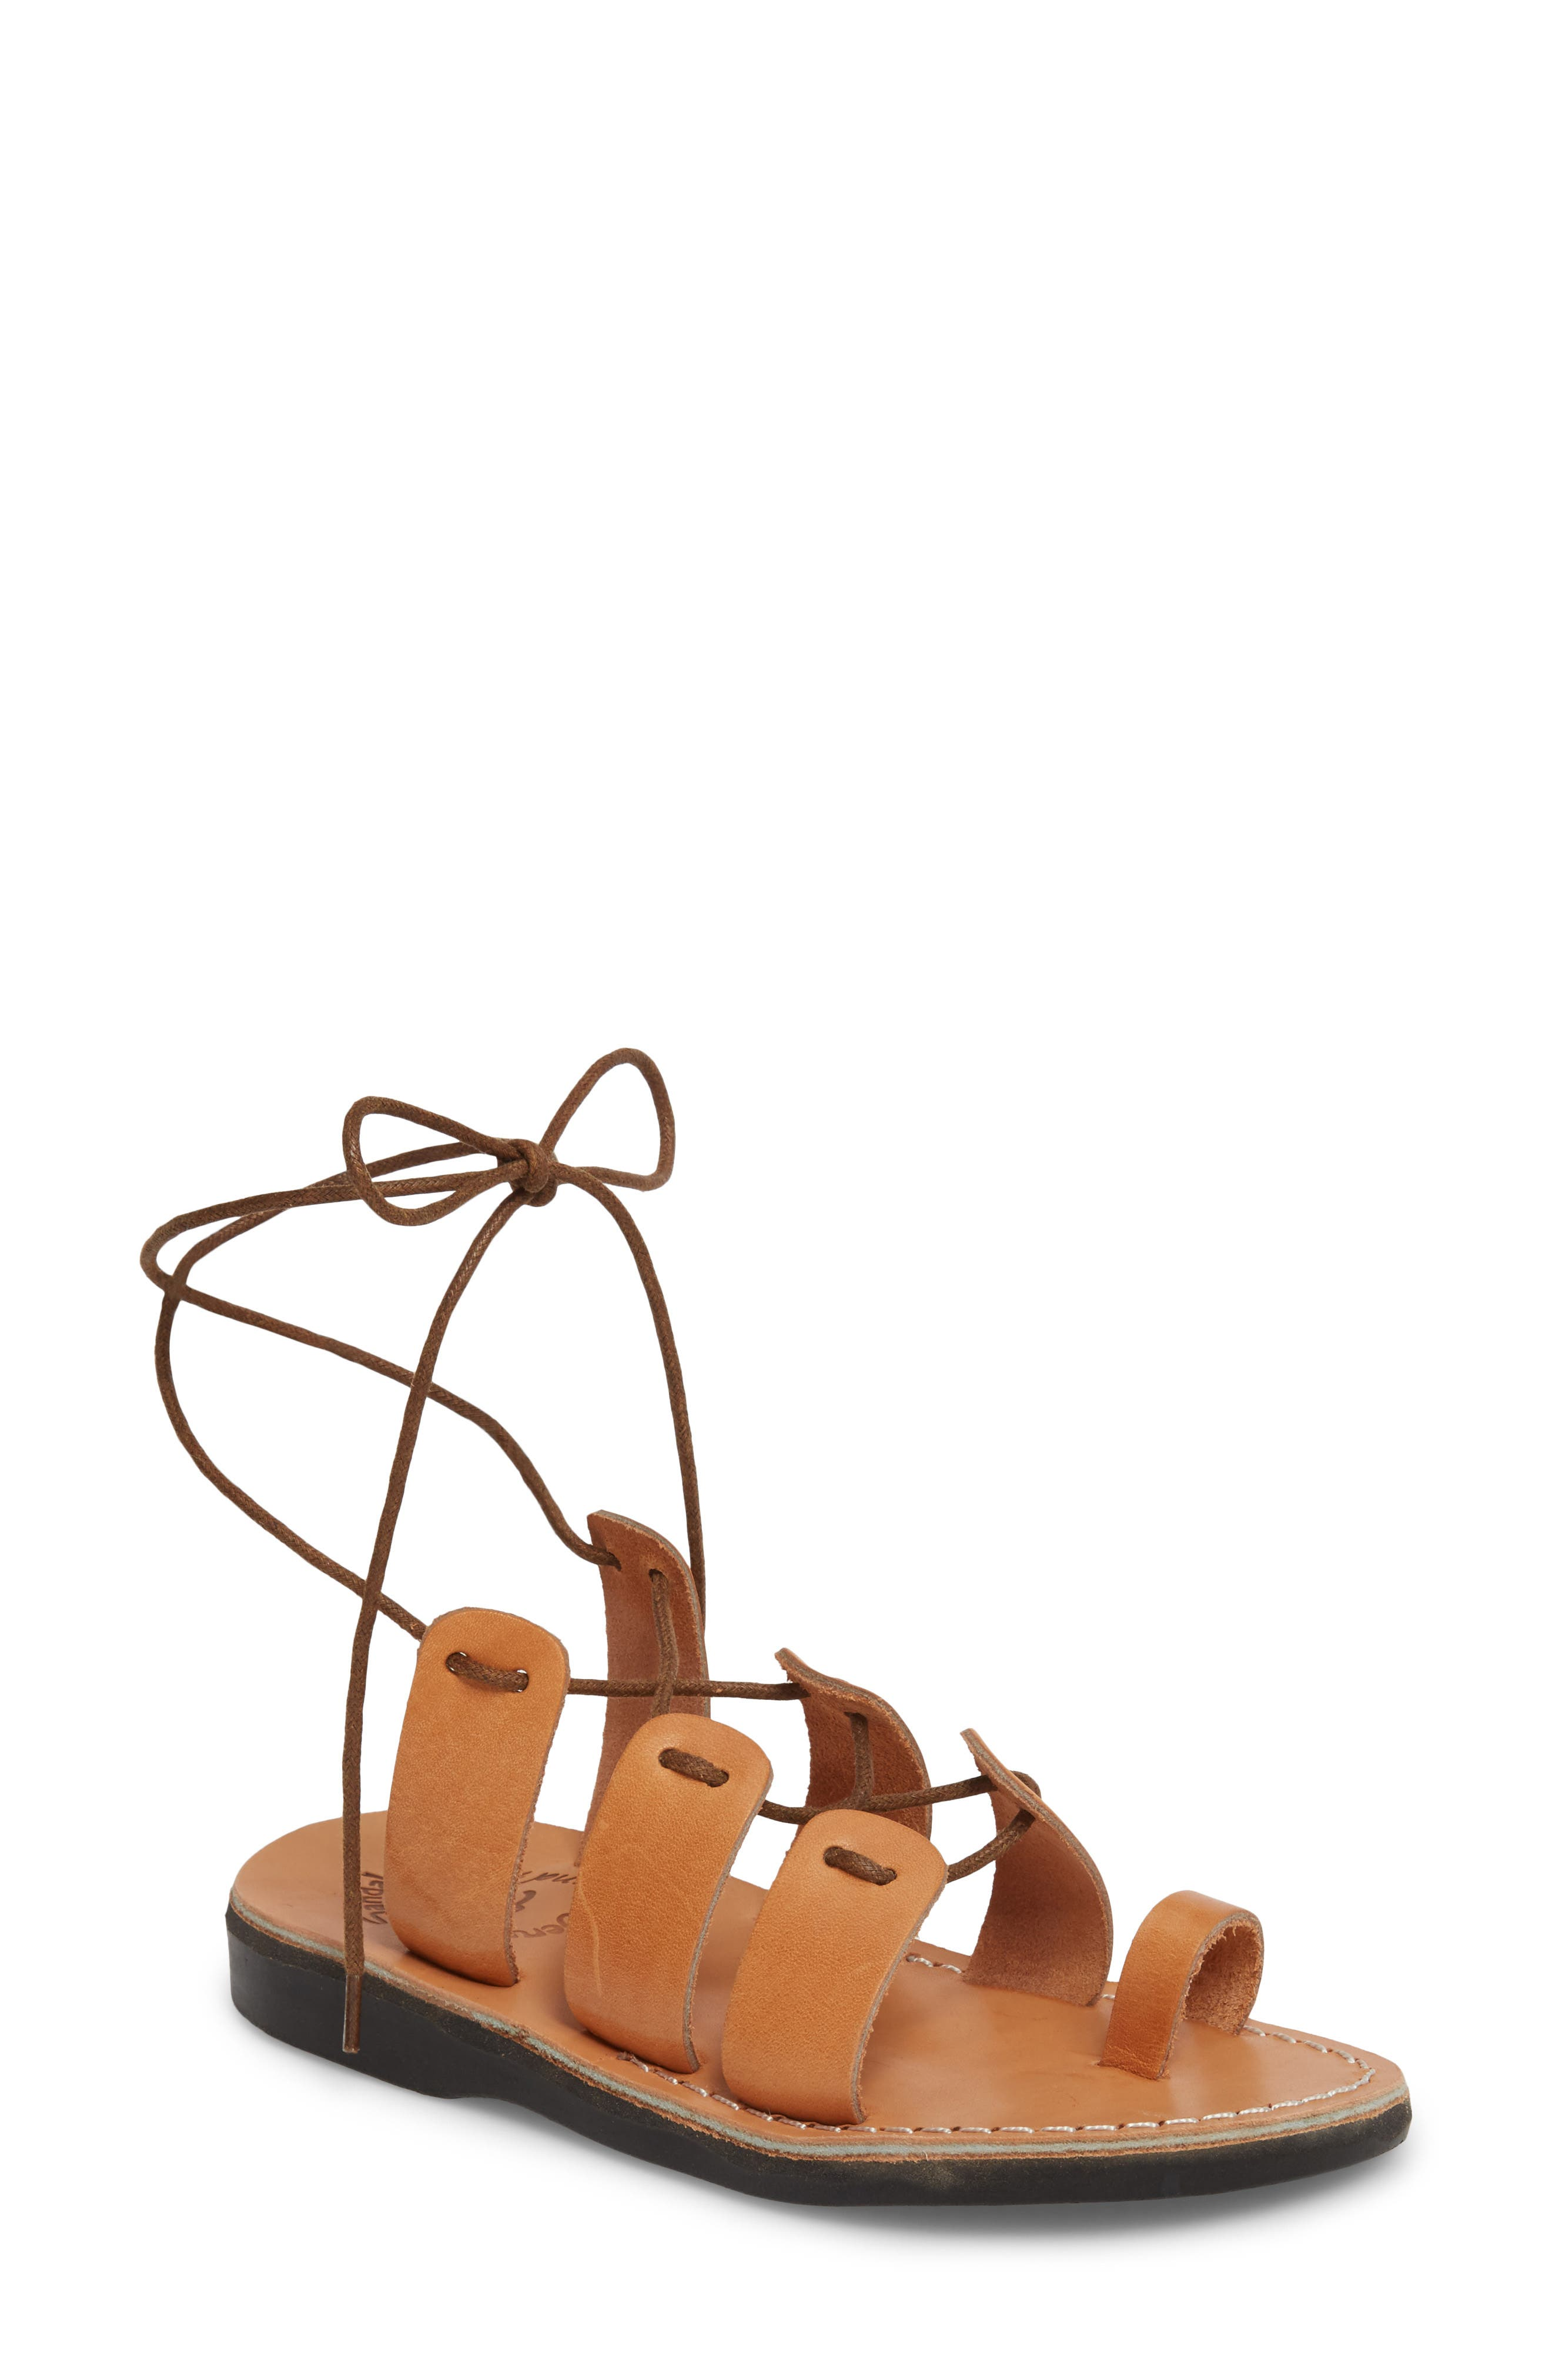 Deborah Wraparound Laces Sandal,                             Main thumbnail 1, color,                             Tan Leather